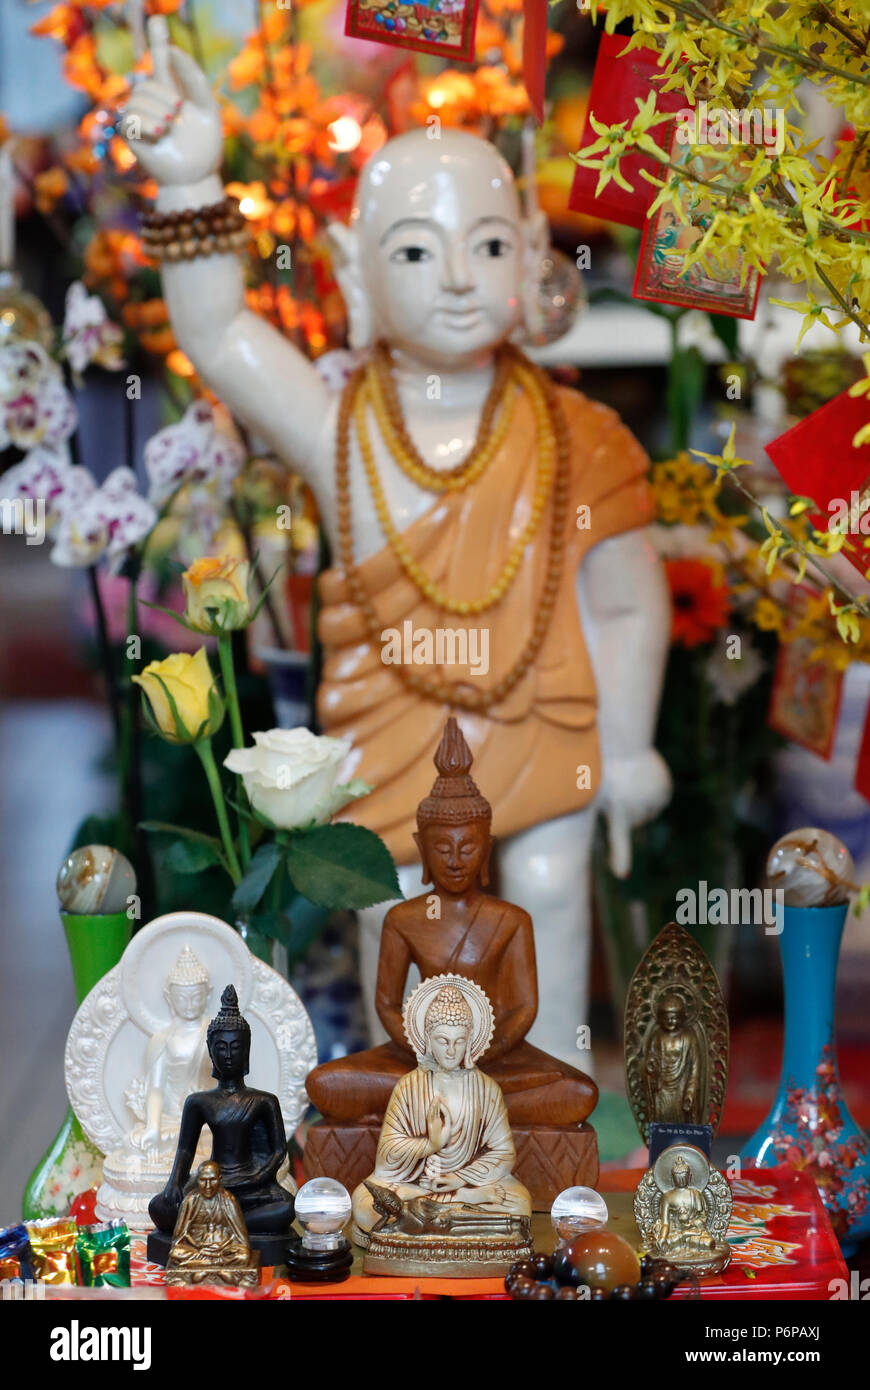 Chua Tu An Buddhist temple.  Infant Buddha statue.  Saint-Pierre en Faucigny. France. - Stock Image